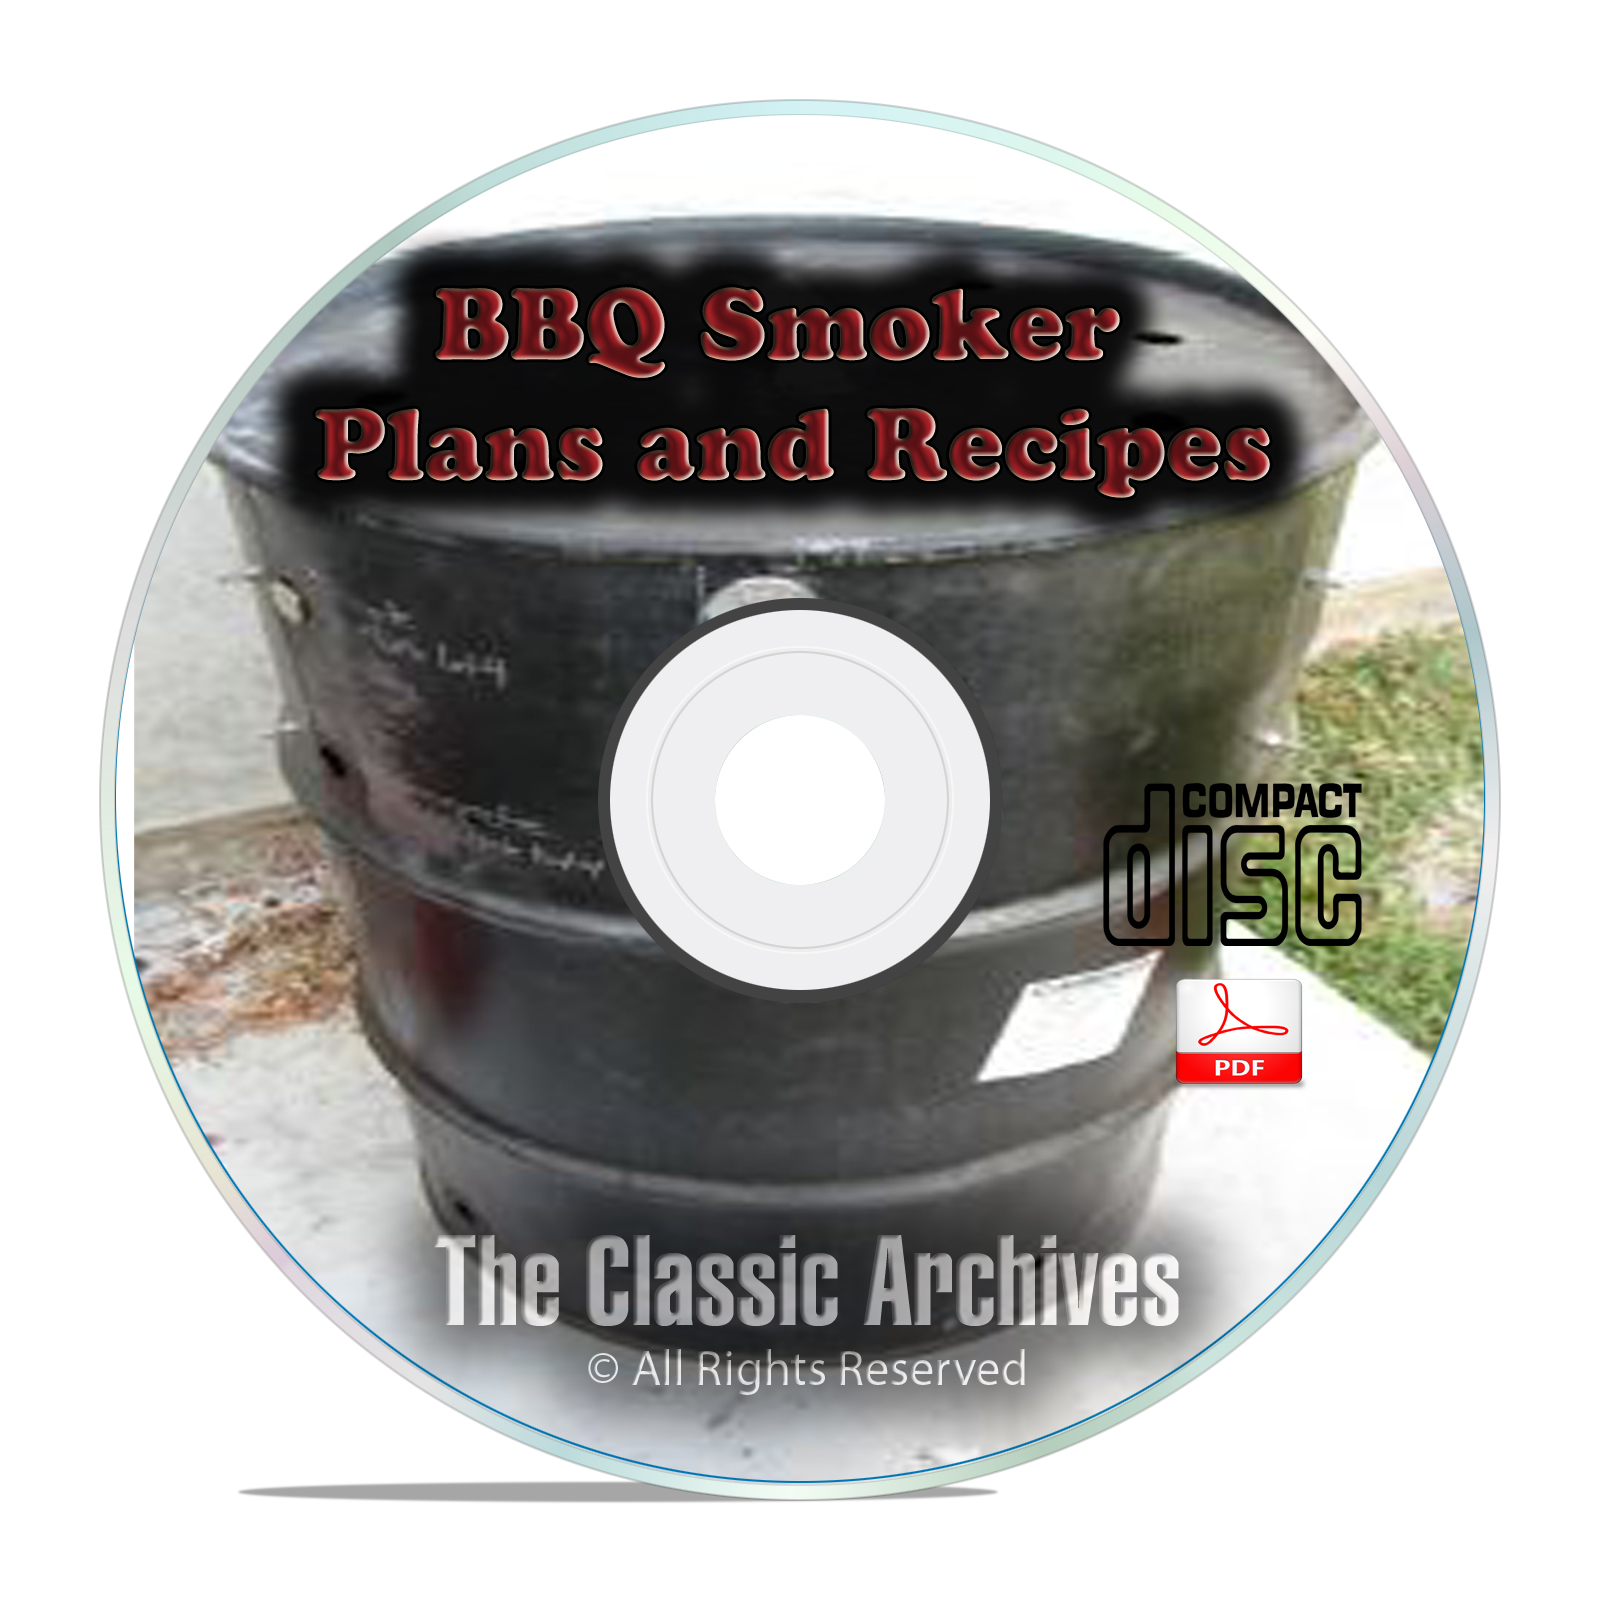 How To Build A Meat Smoker Smokehouse Plans, Smoking Meat Food Recipes CD